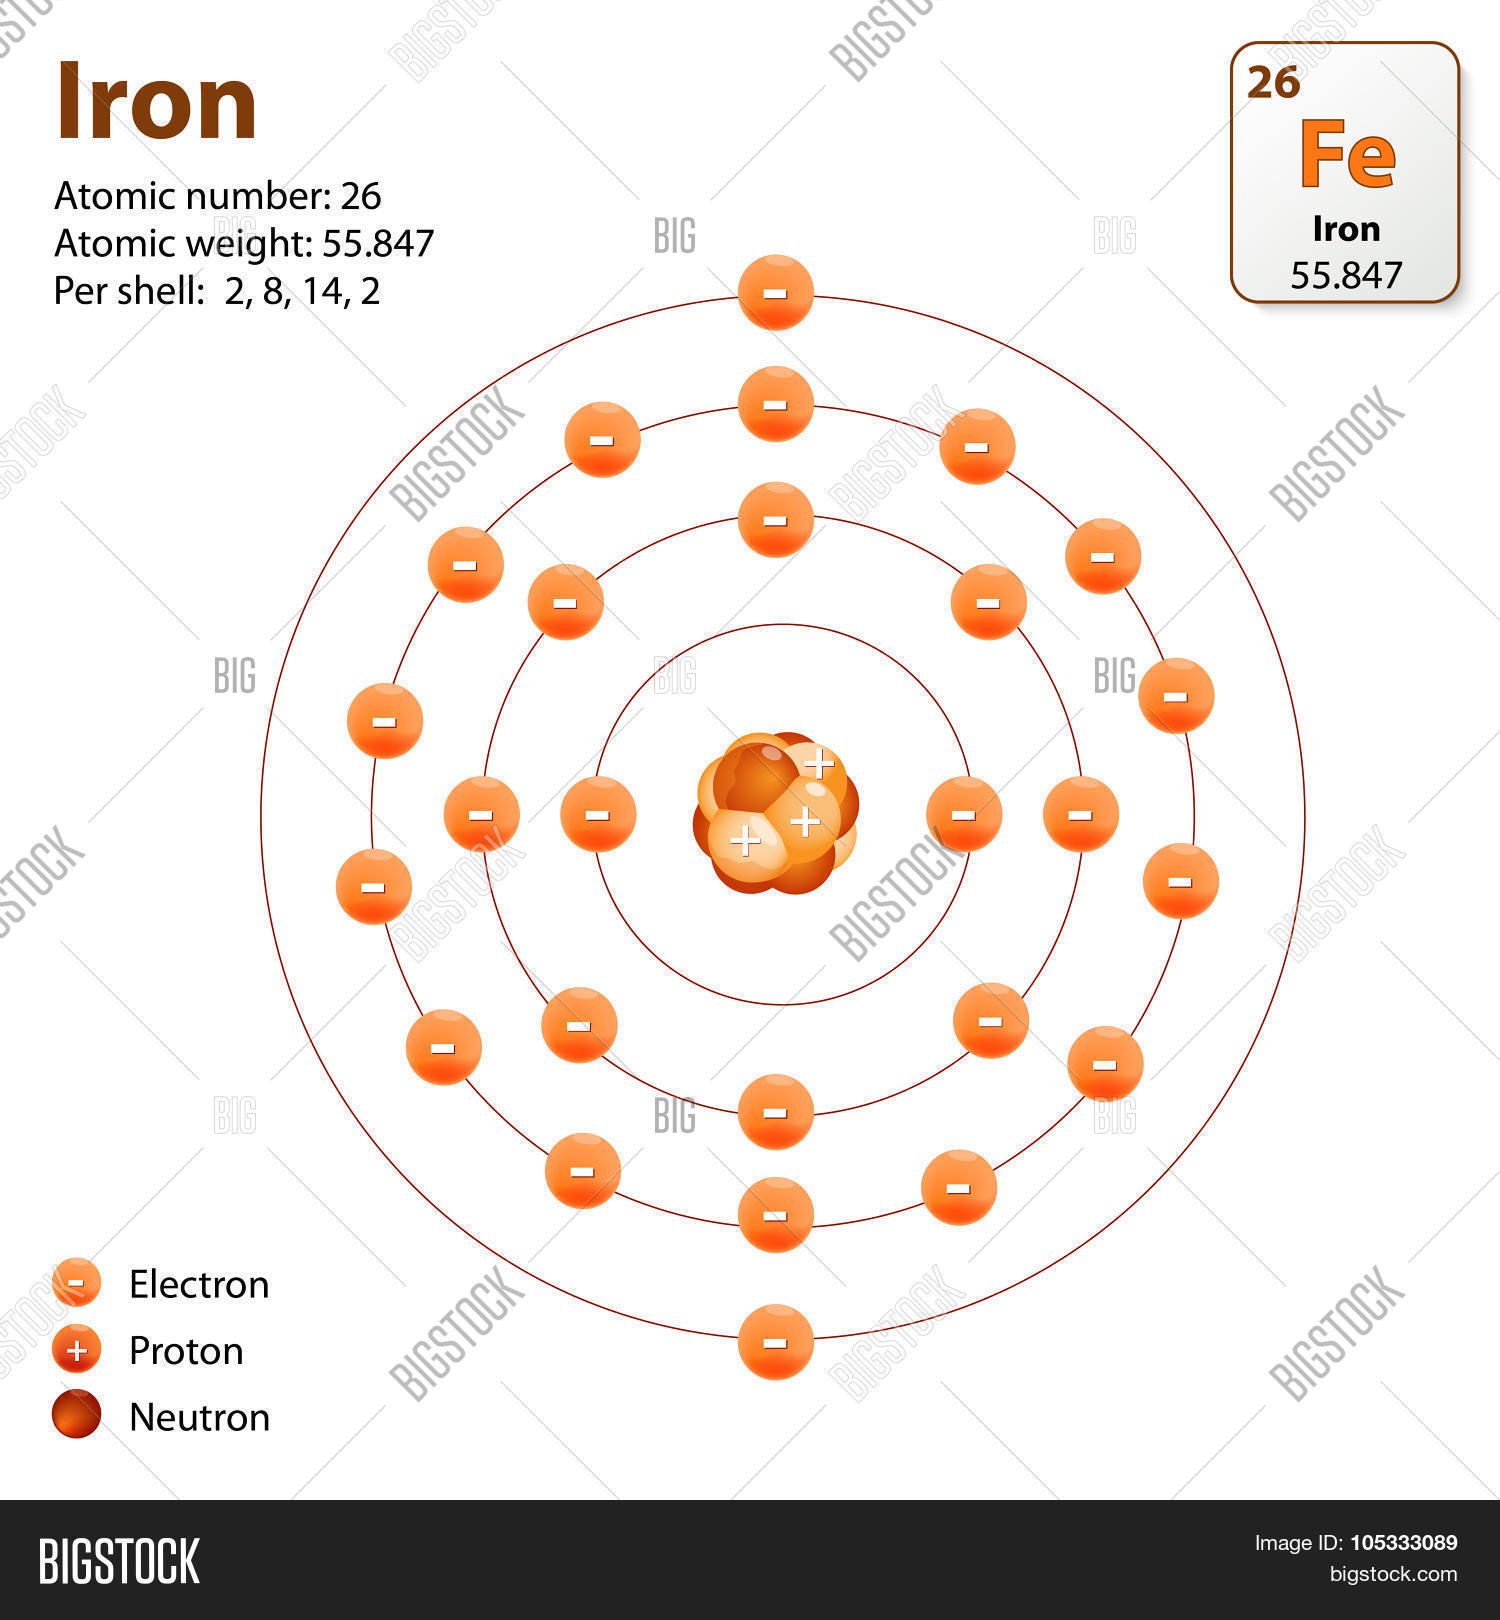 Iron atom structure vector photo free trial bigstock atom structure ccuart Image collections